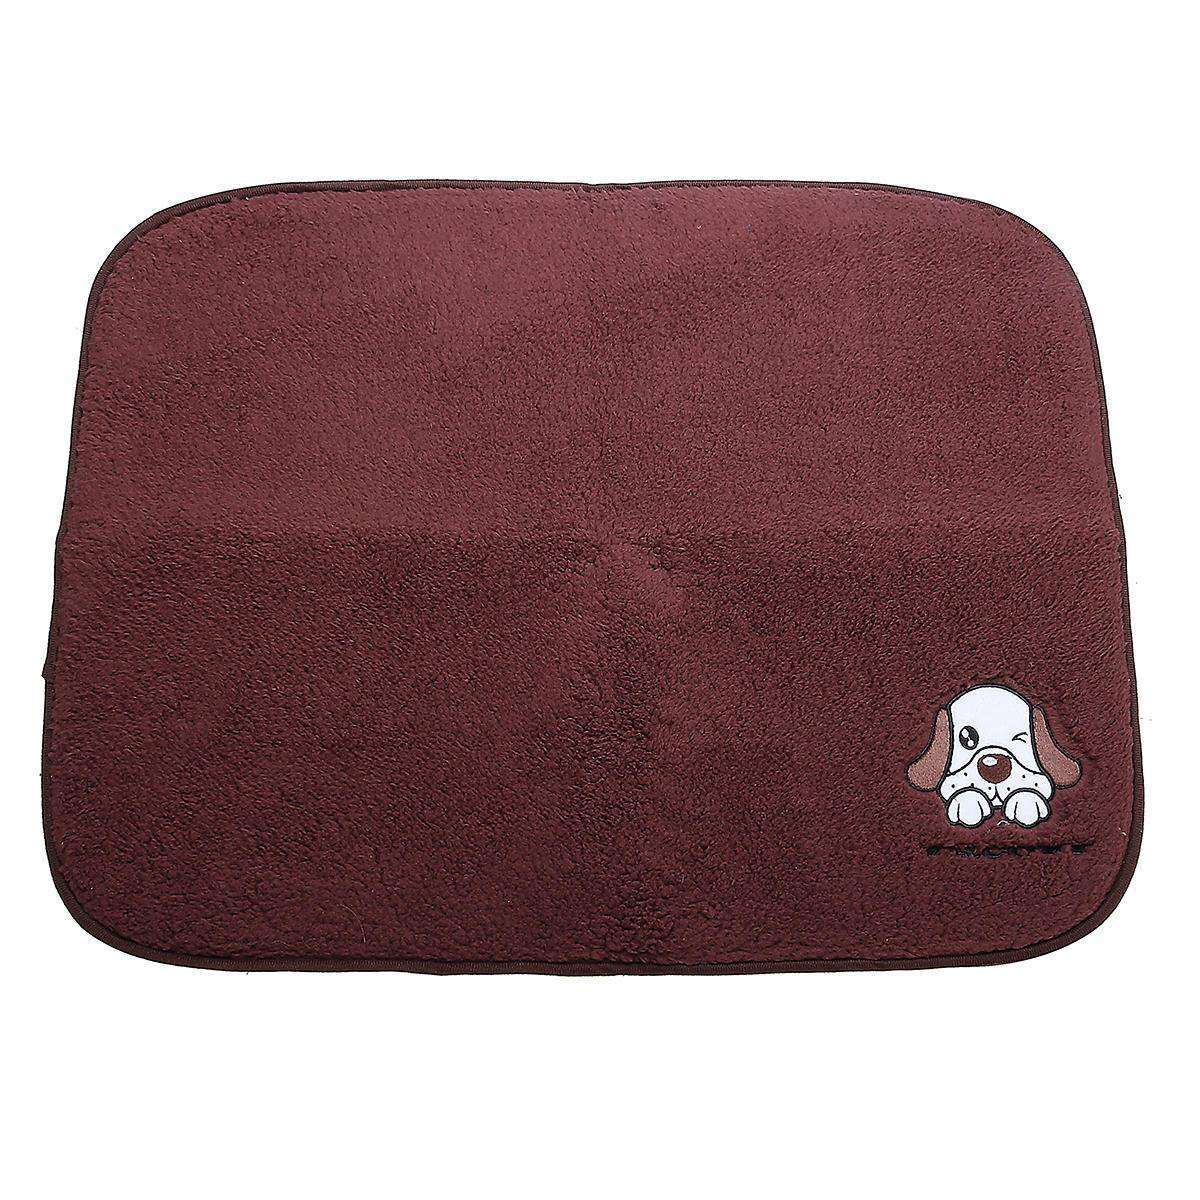 LARNELEC :2 in 1 Dog Cat Pet Warm Sleeping Blanket And Cooling Bed Pad,Brown / L,Dog Mat